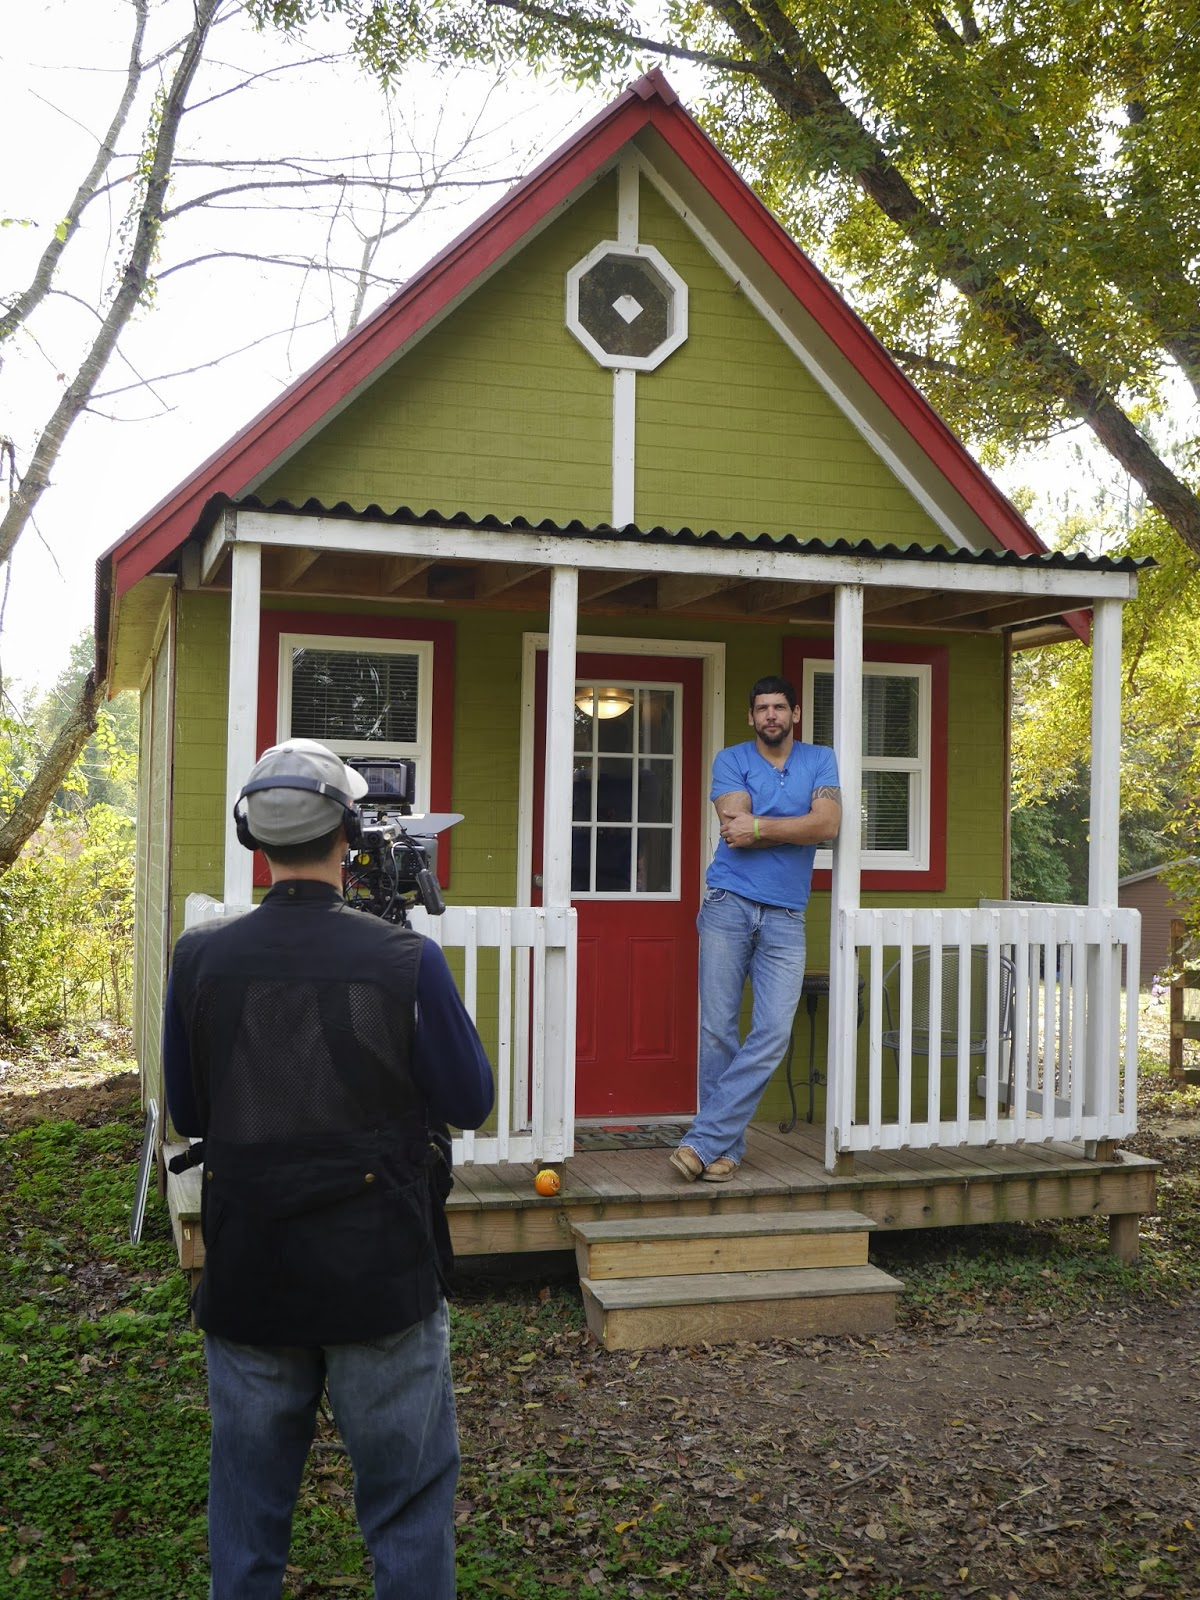 Relaxshacks Com Tiny House Building And Design Workshop 3 Days W Camping In Memphis Tn